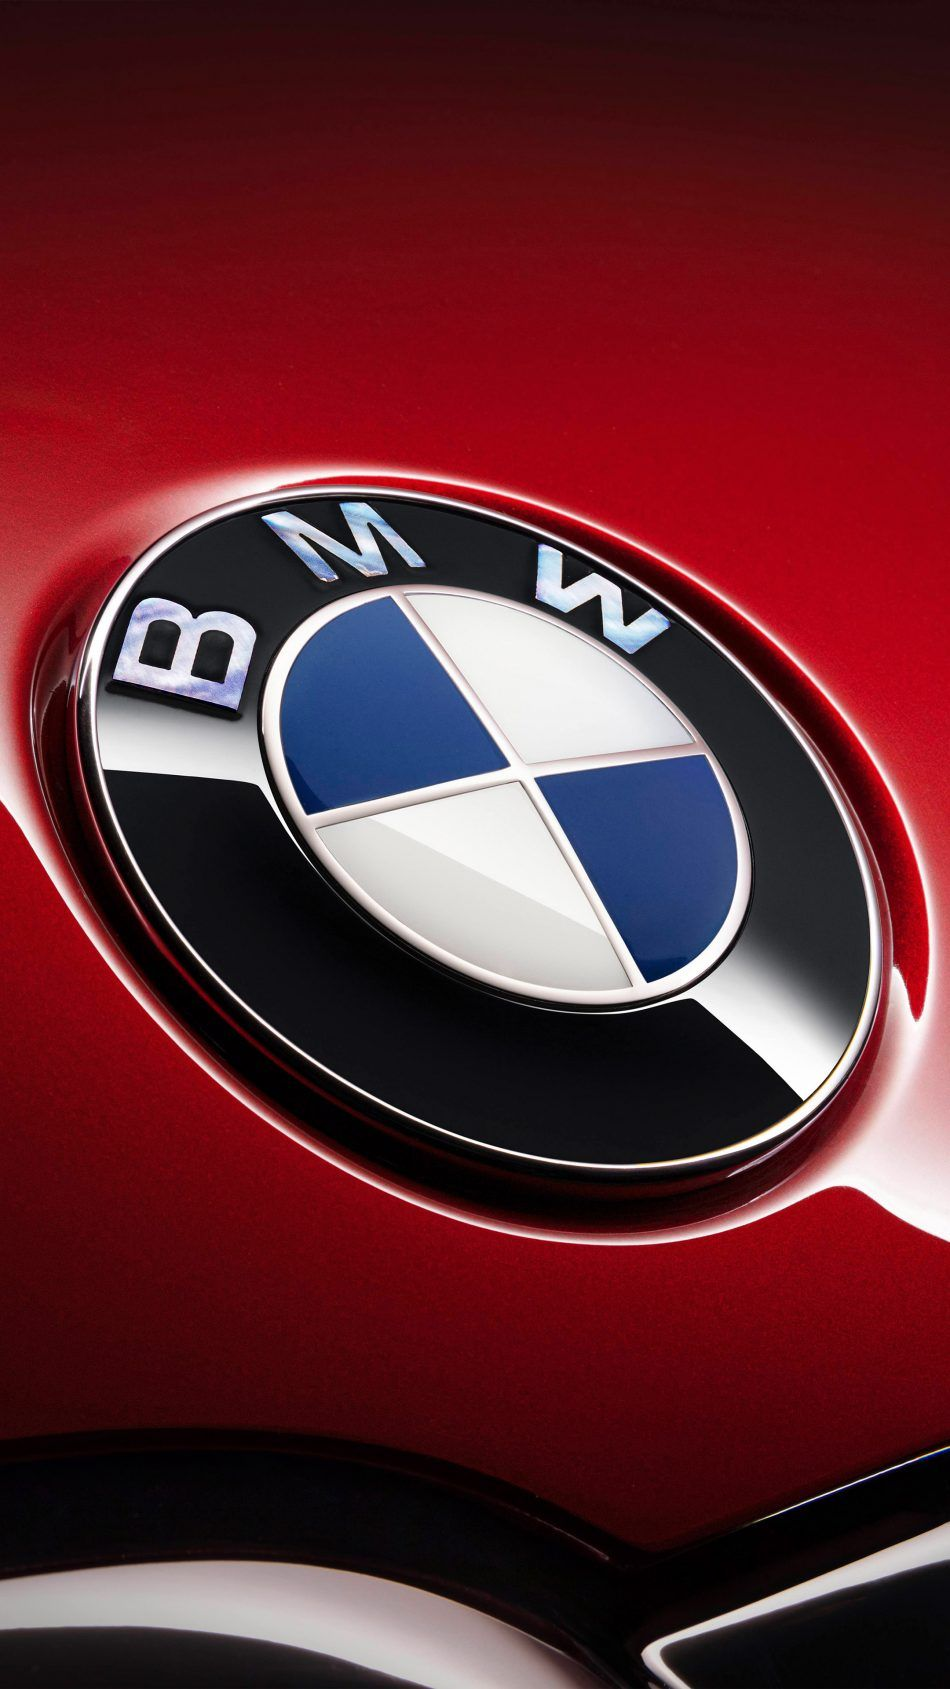 Bmw 7 Series Logo Bmw Wallpapers Bmw Bmw Iphone Wallpaper